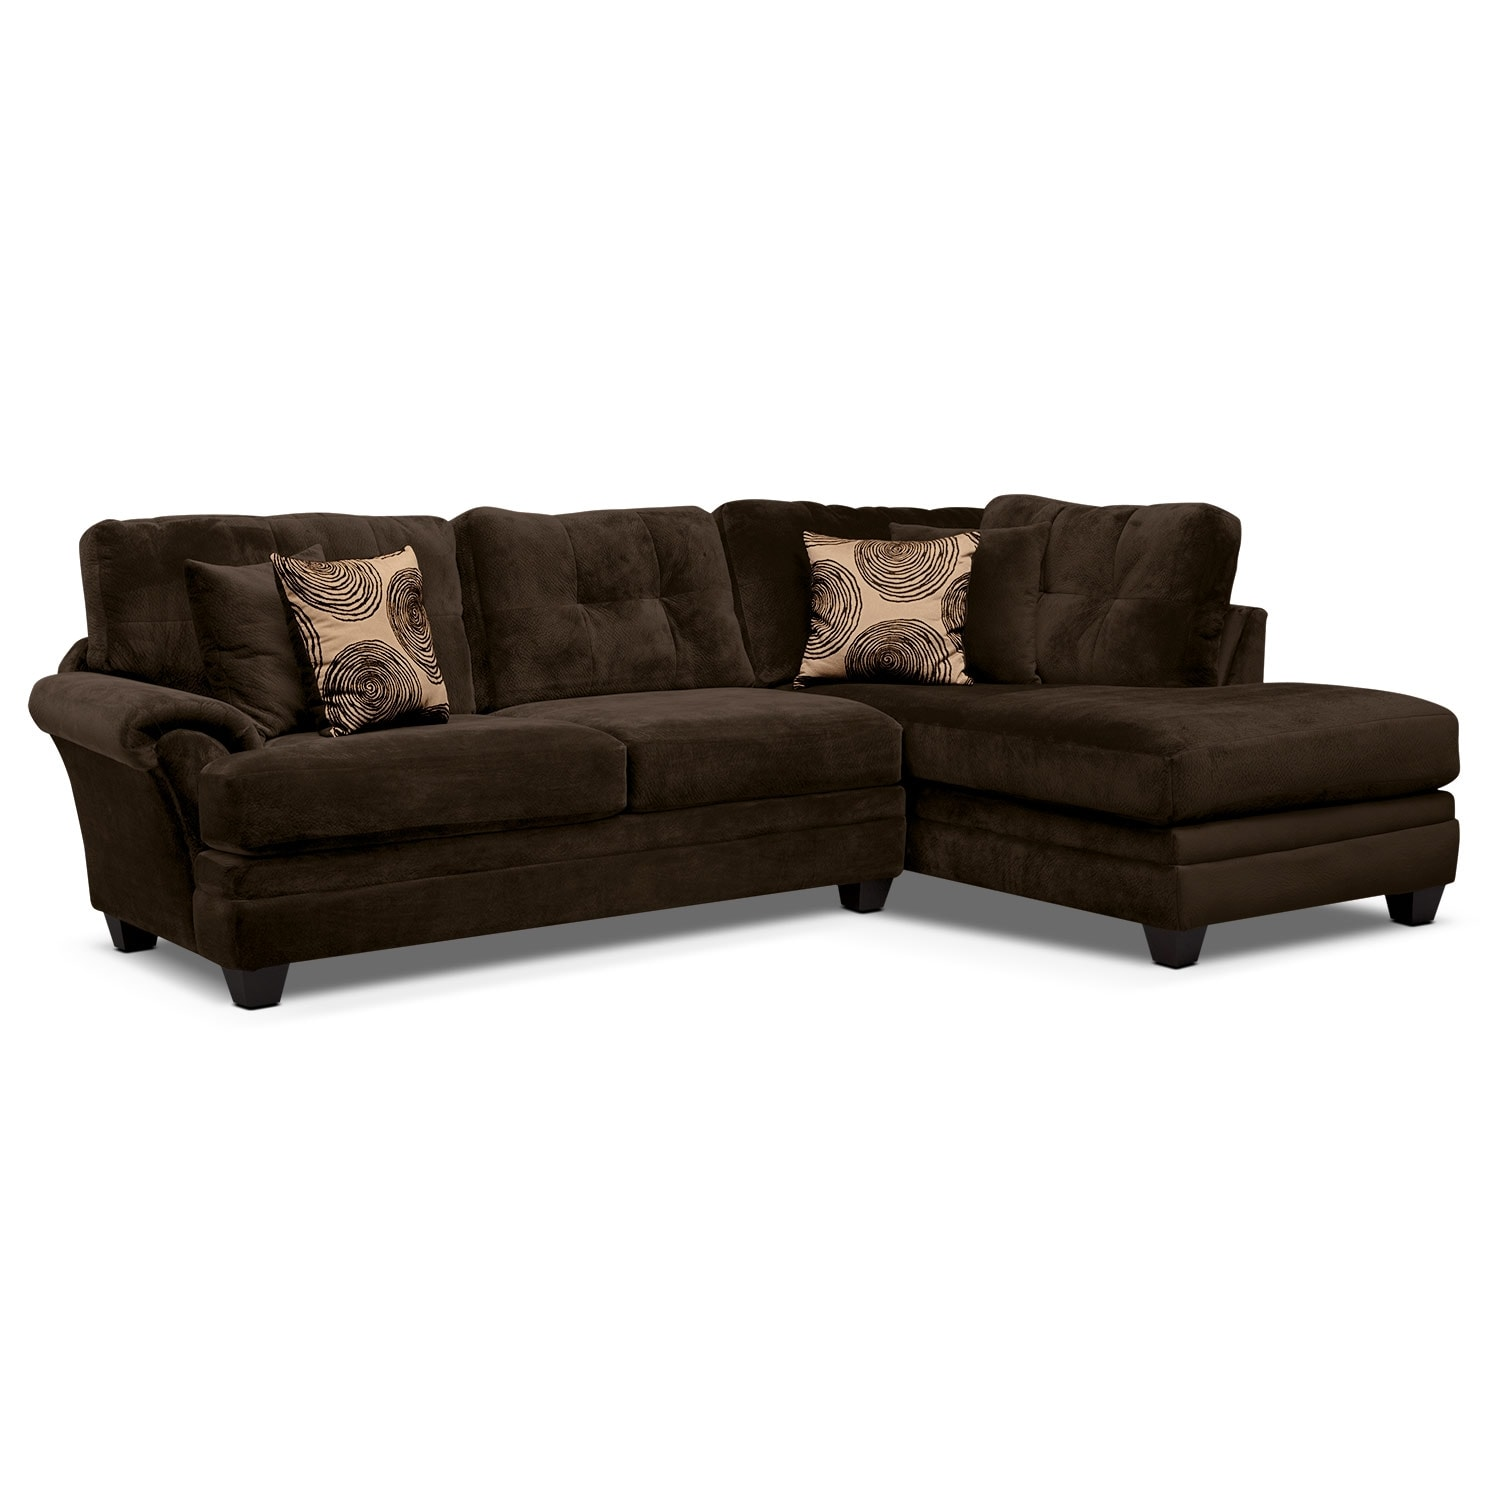 Furnishings for every room online and store furniture for Sectional furniture